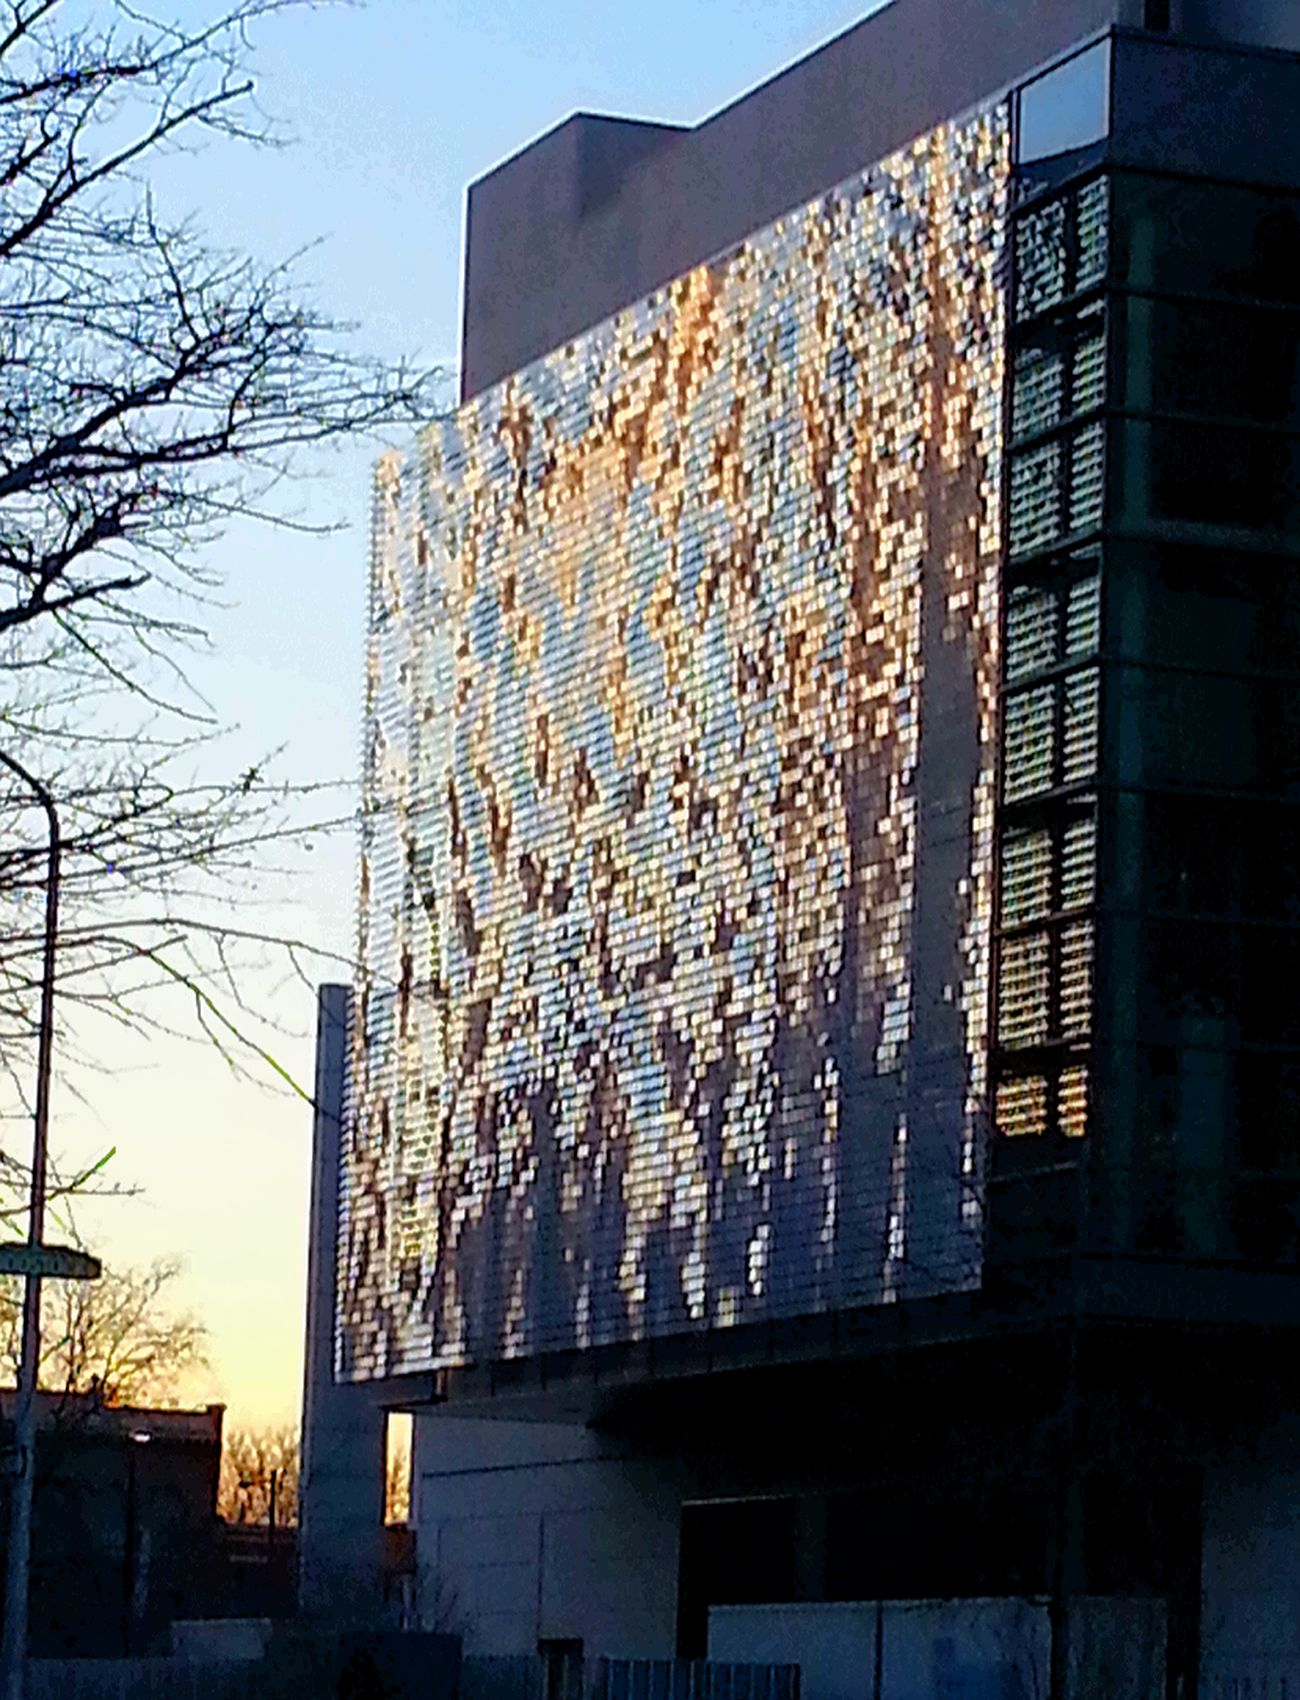 Kinetic shimmer wall by Ned Khan. Philadelphia Art Shimmer Radiate Aluminum Franklin Institute Changing Weather Structure Science And Art Undulating Waves